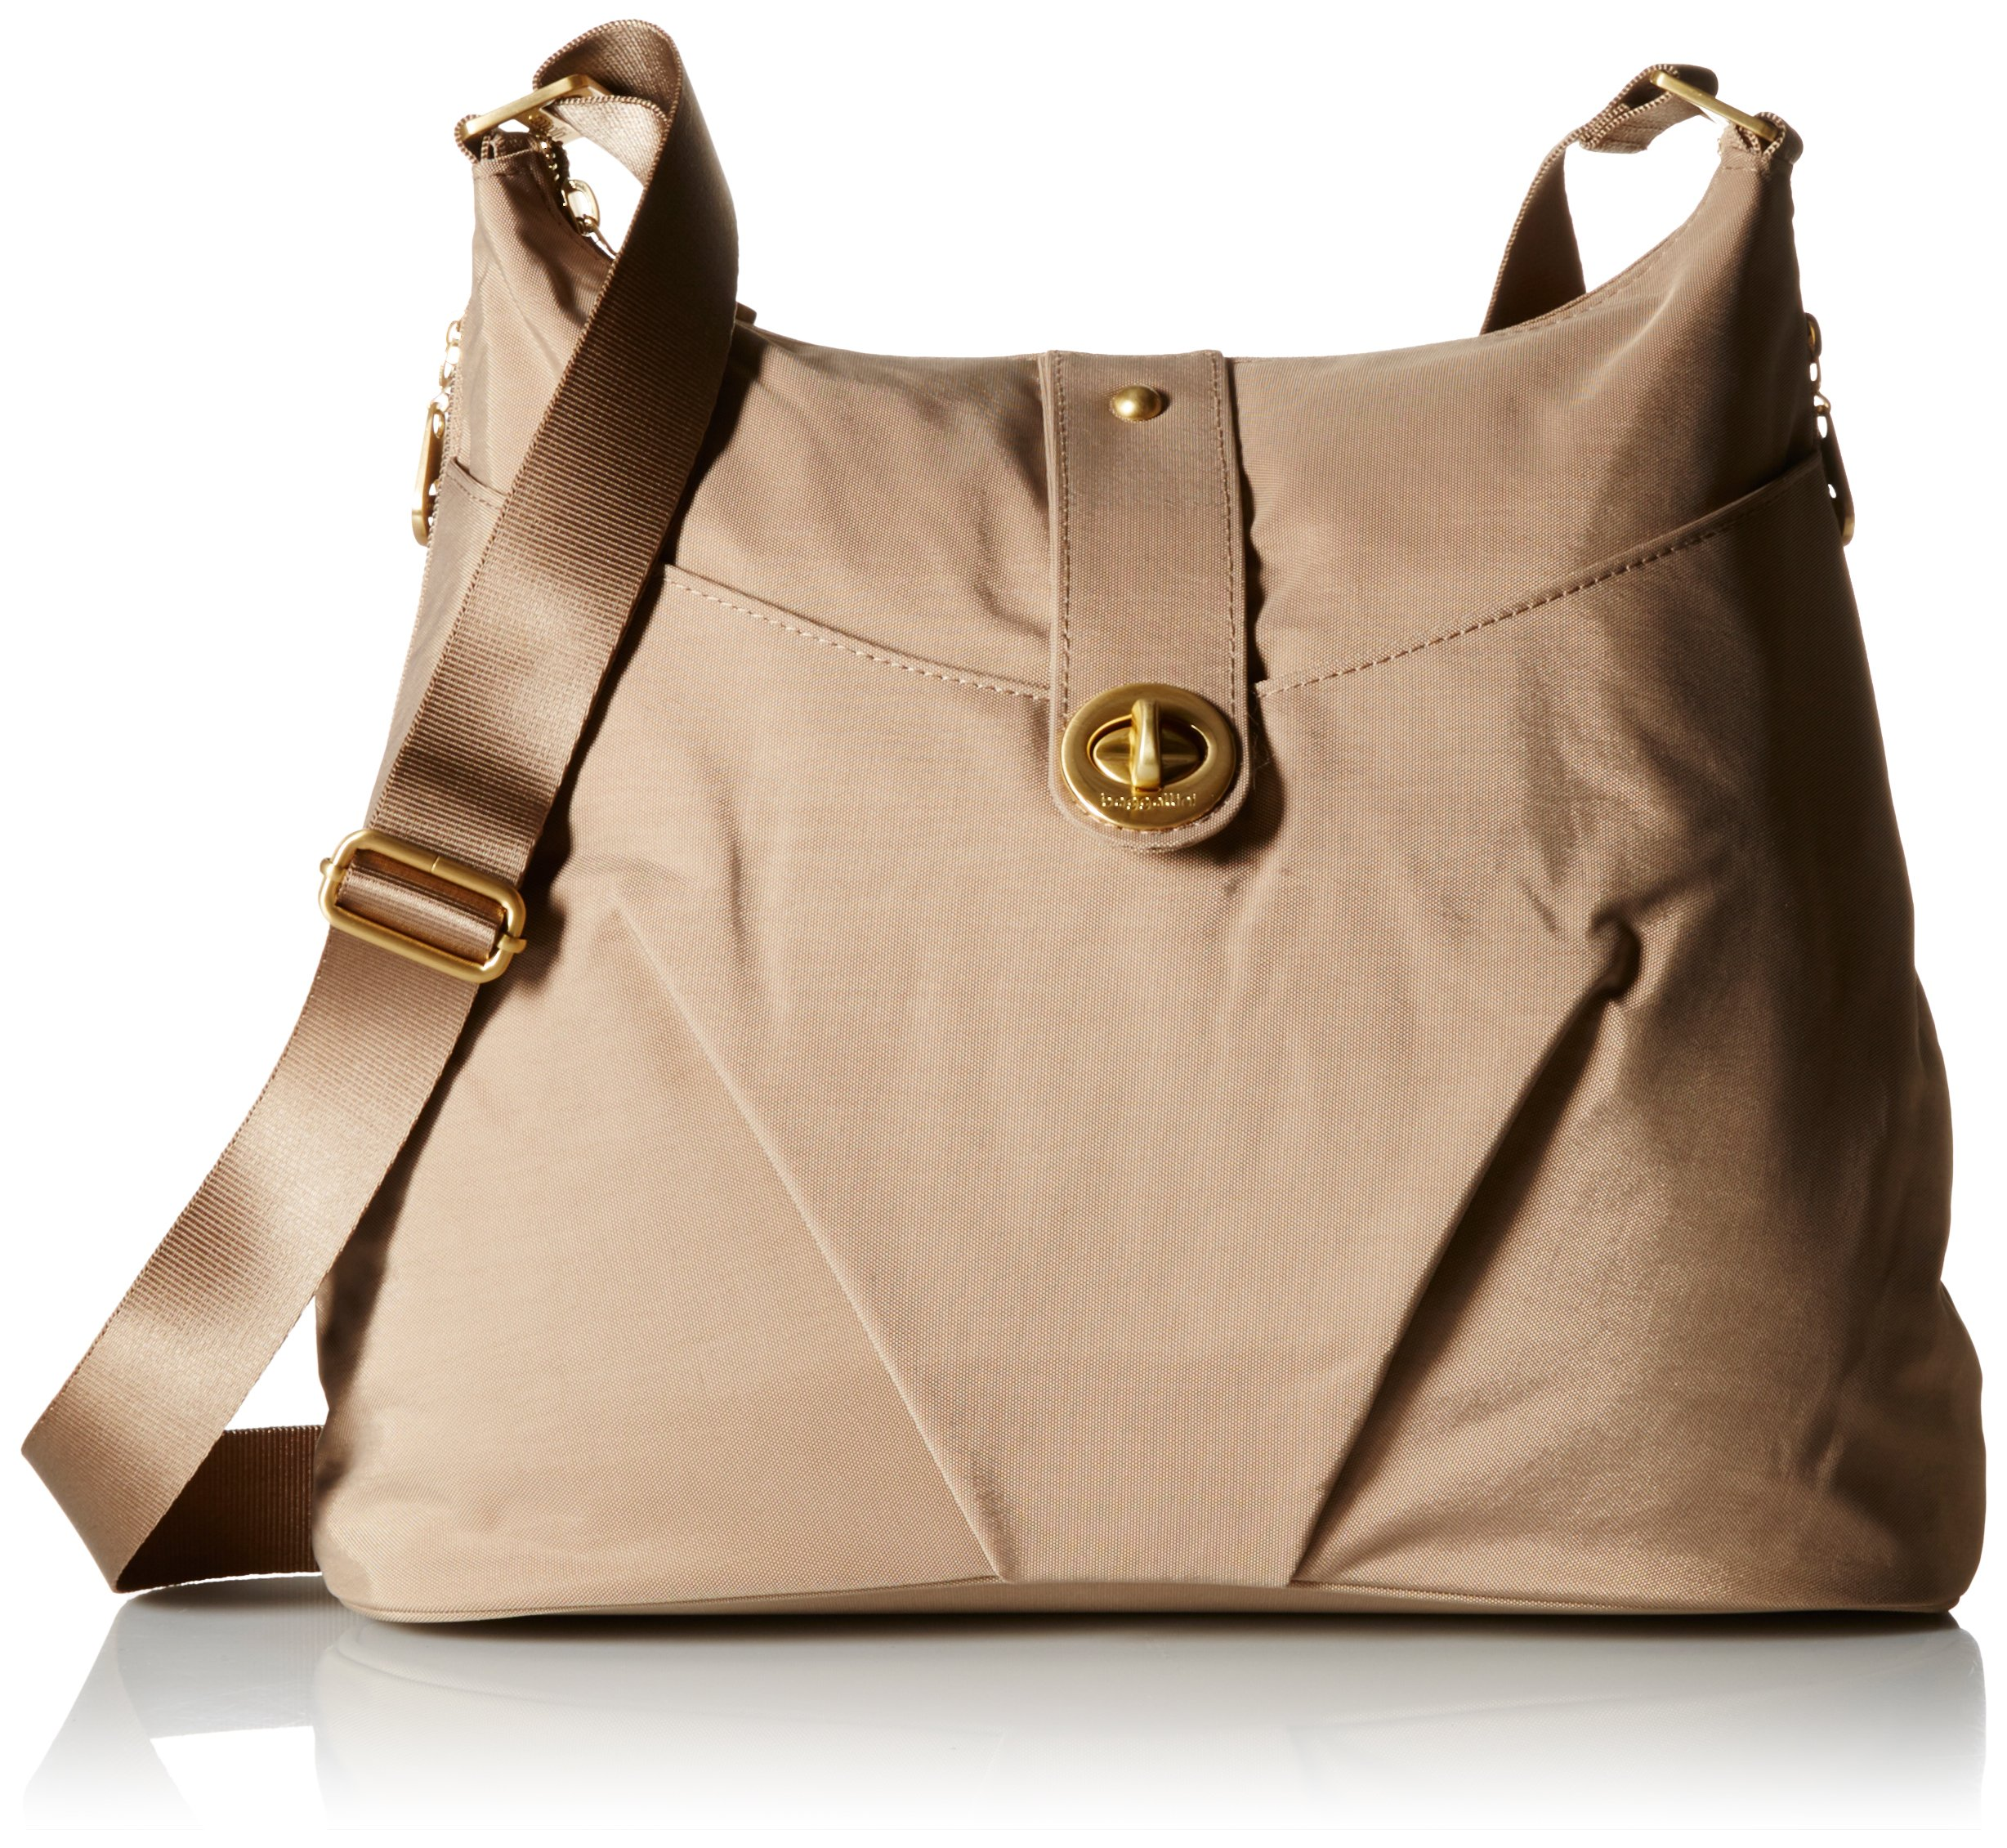 Baggallini Helsinki Travel Tote, Gold Hardware, Beach